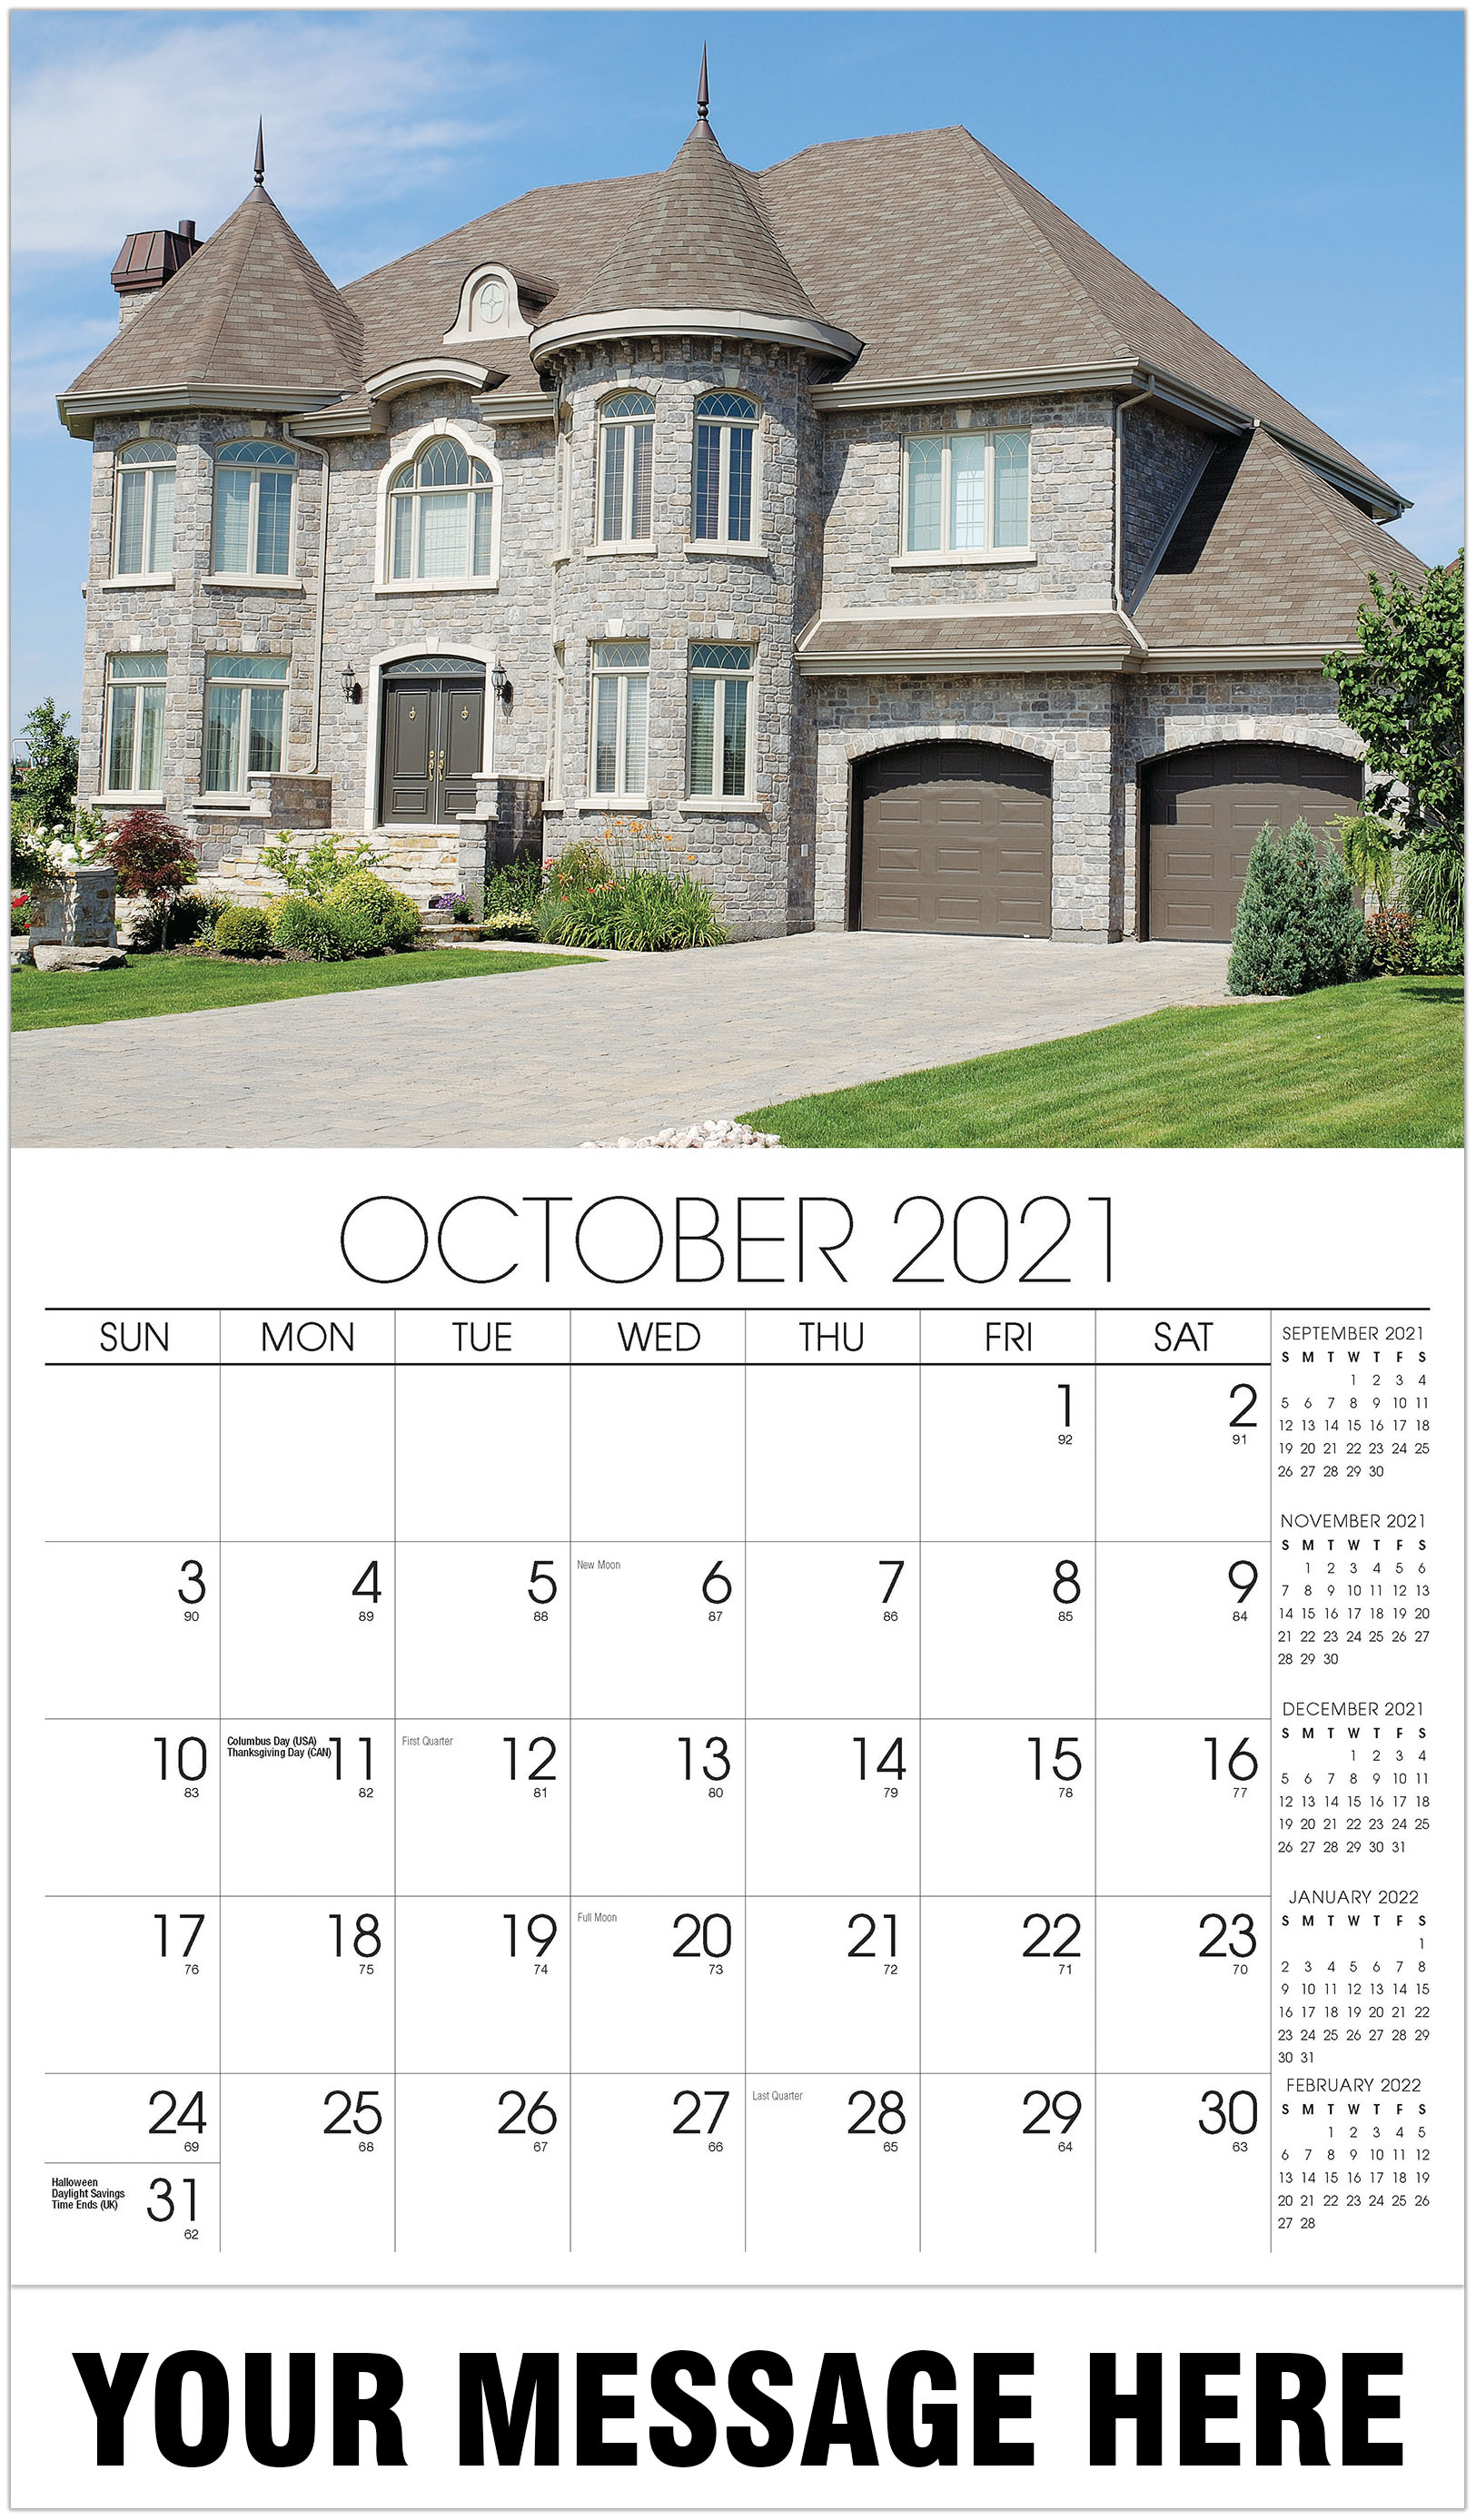 Luxury Homes Calendar - October - Homes 2021 Promotional Calendar